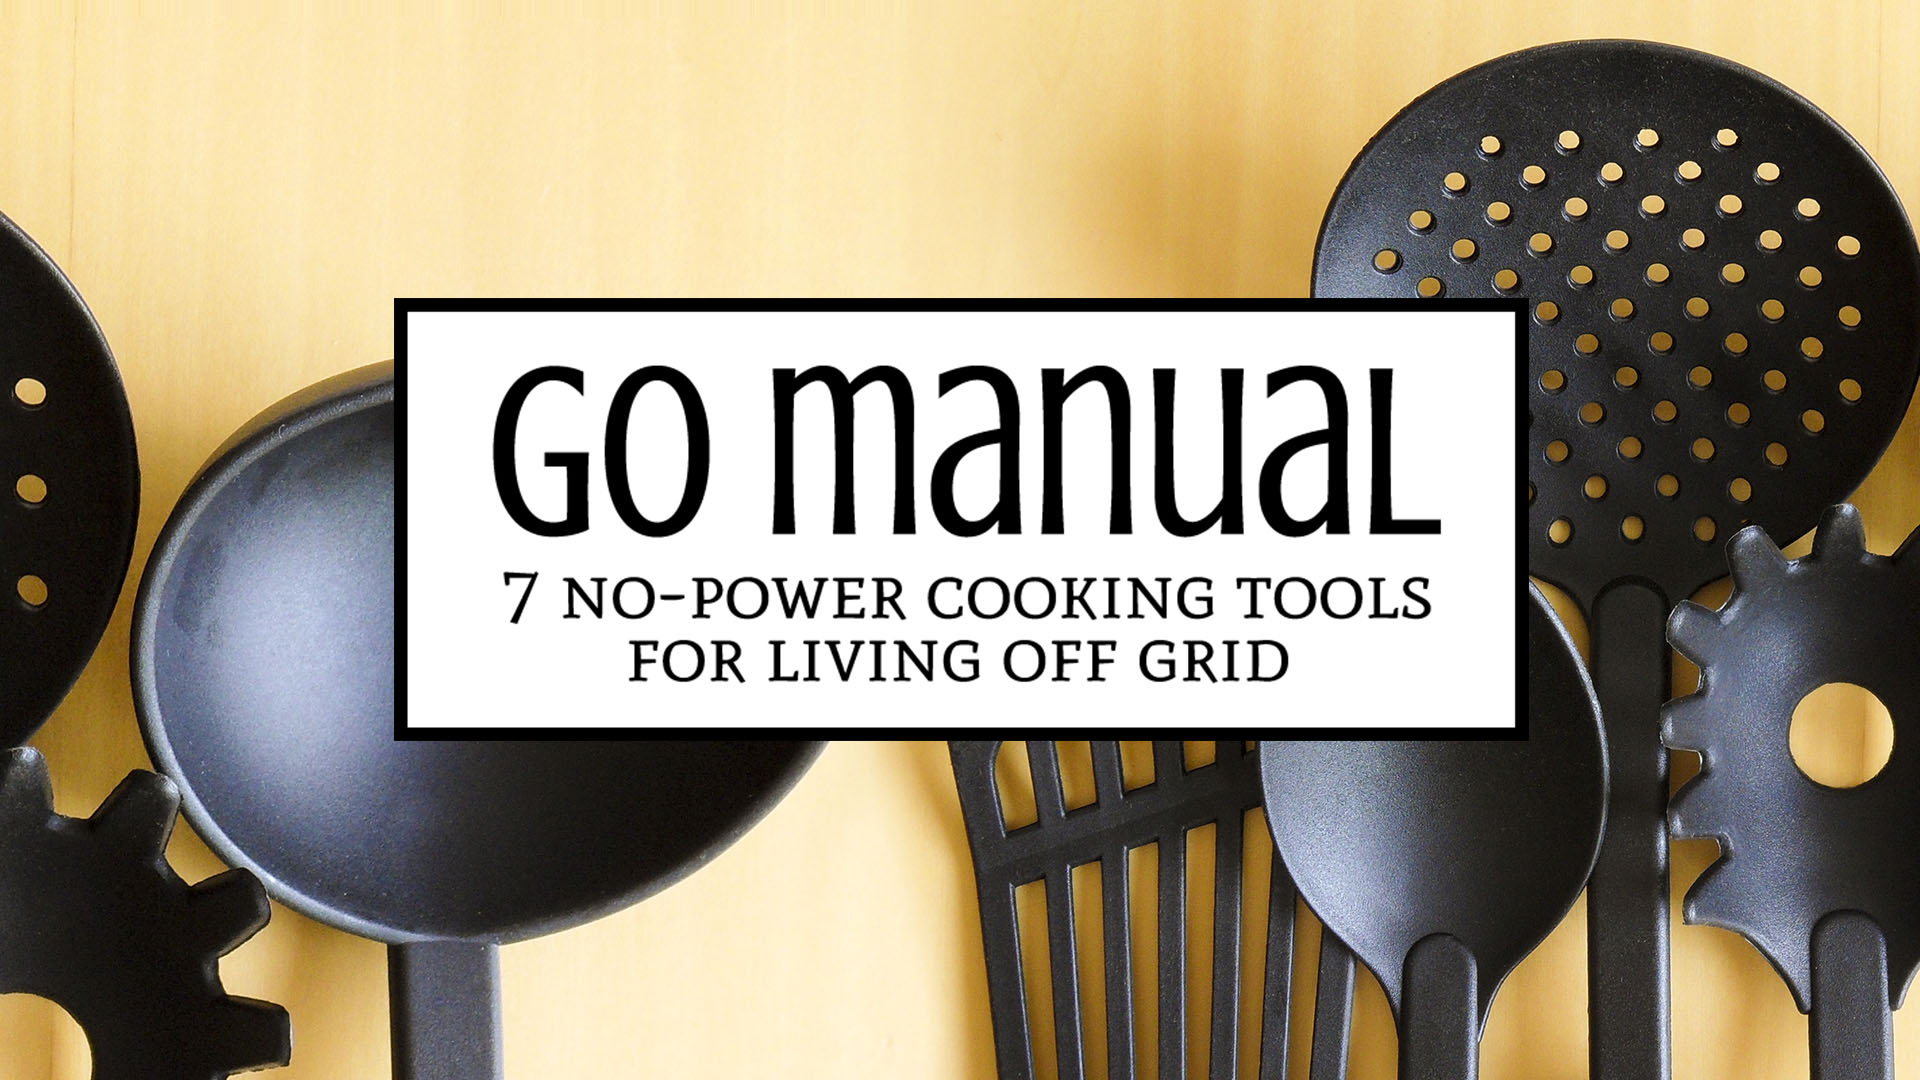 Cooking tools are necessary in every kitchen. These days, most cooking tools use electricity, but what happens when the power goes out? Go manual with these 7 no-power cooking tools for living off the grid! | Tiny Kitchen Cuisine | http://tiny.kitchen